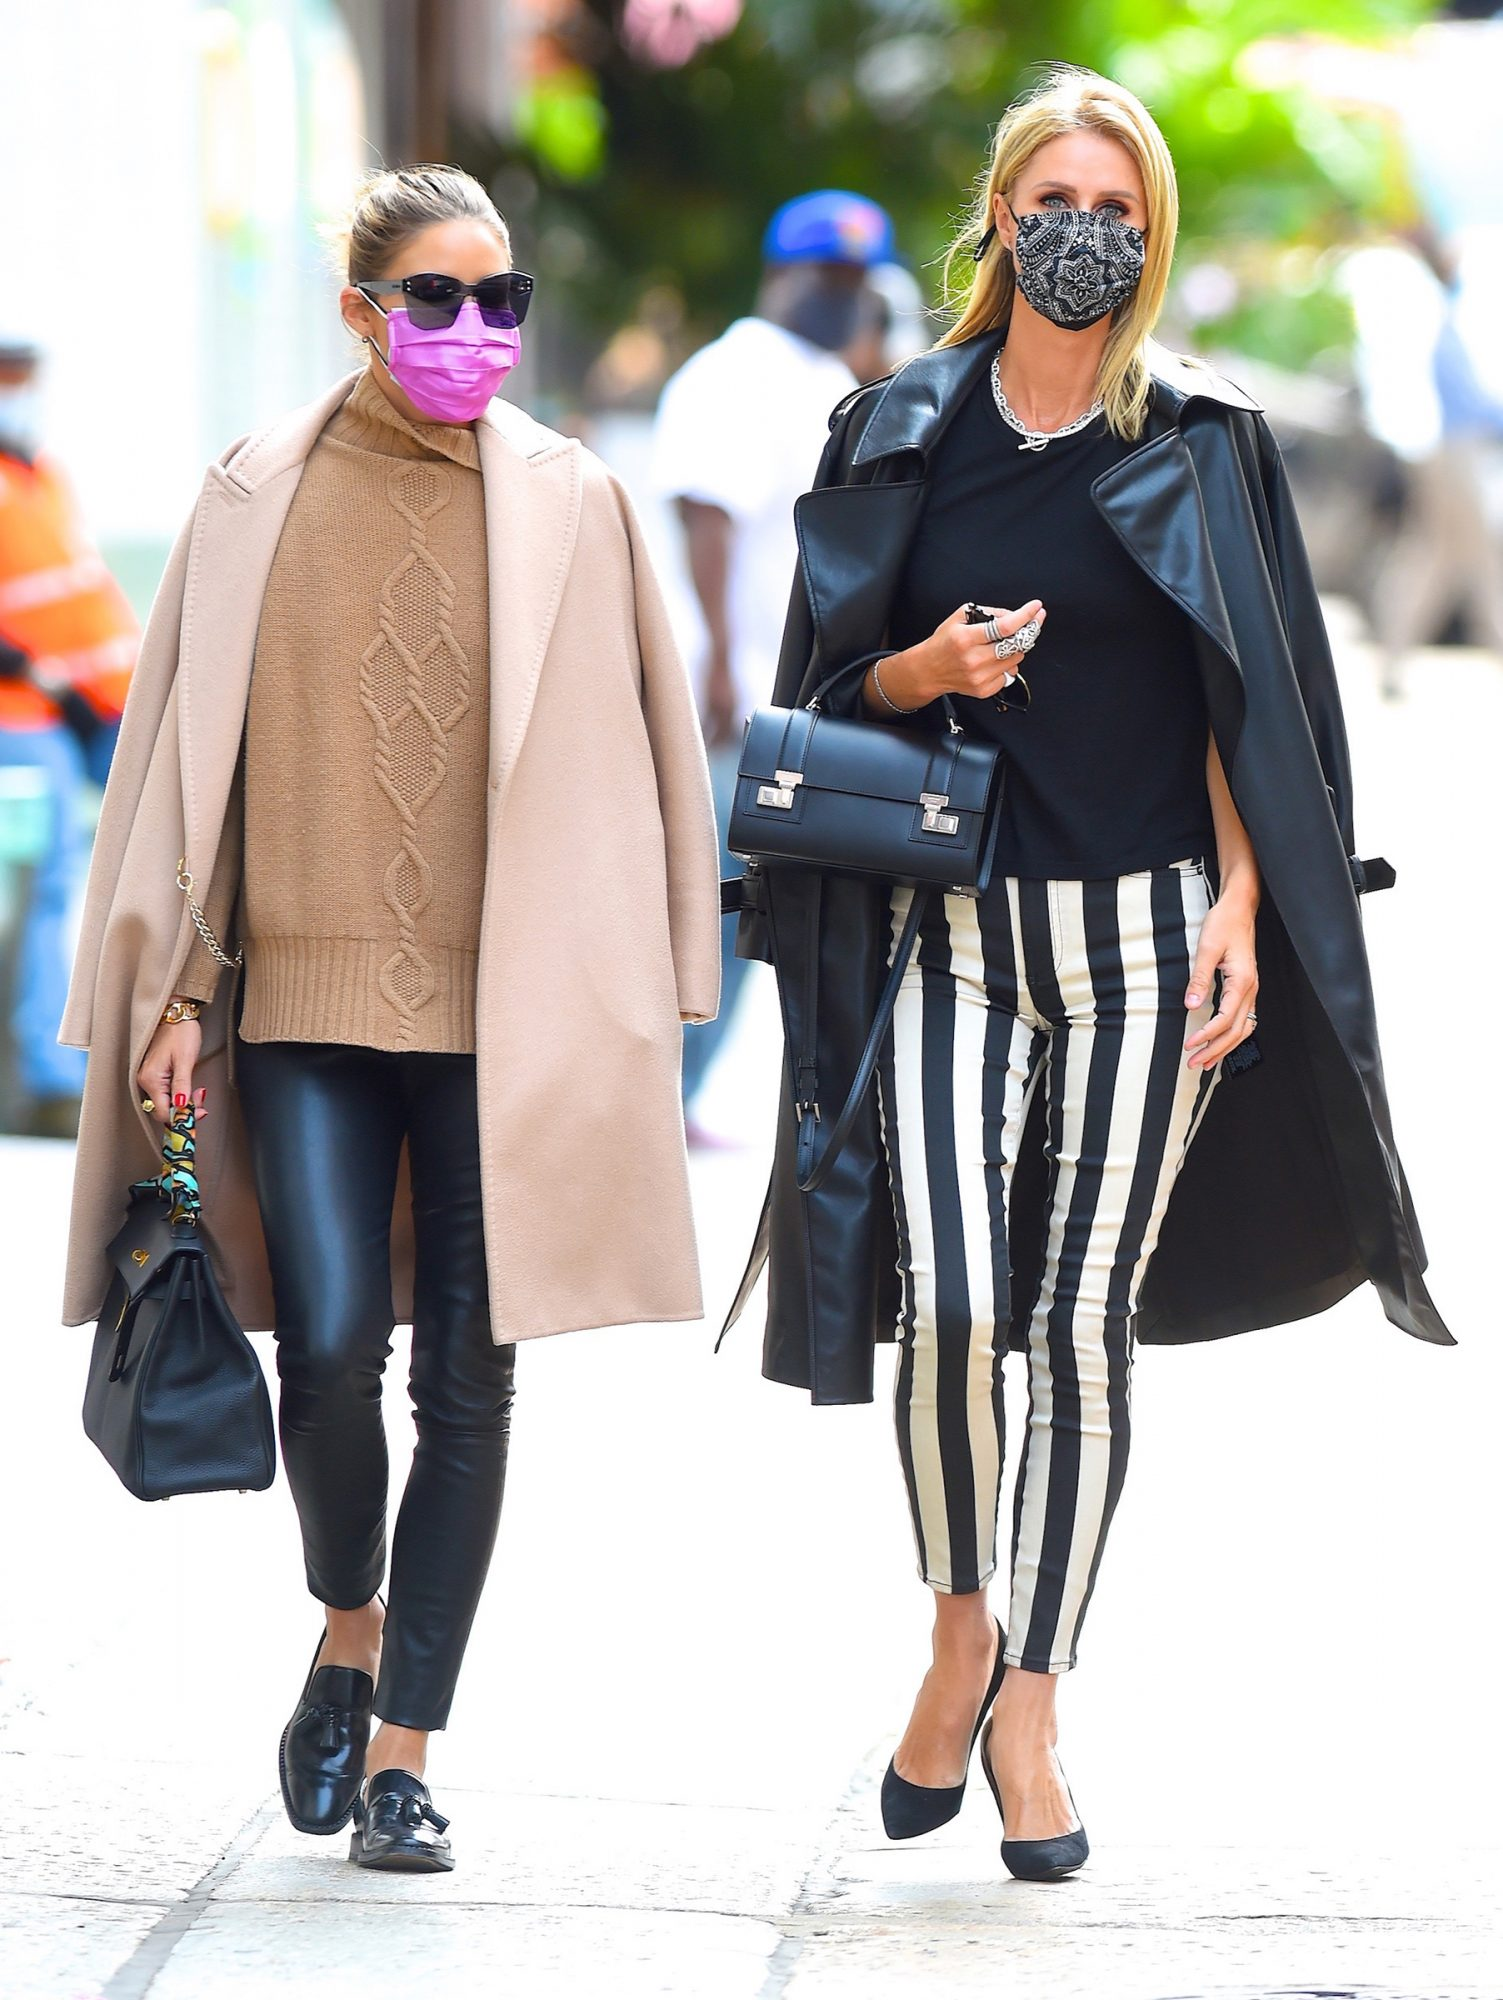 Olivia Palermo and Nicky Hilton Rothschild seen in SoHo